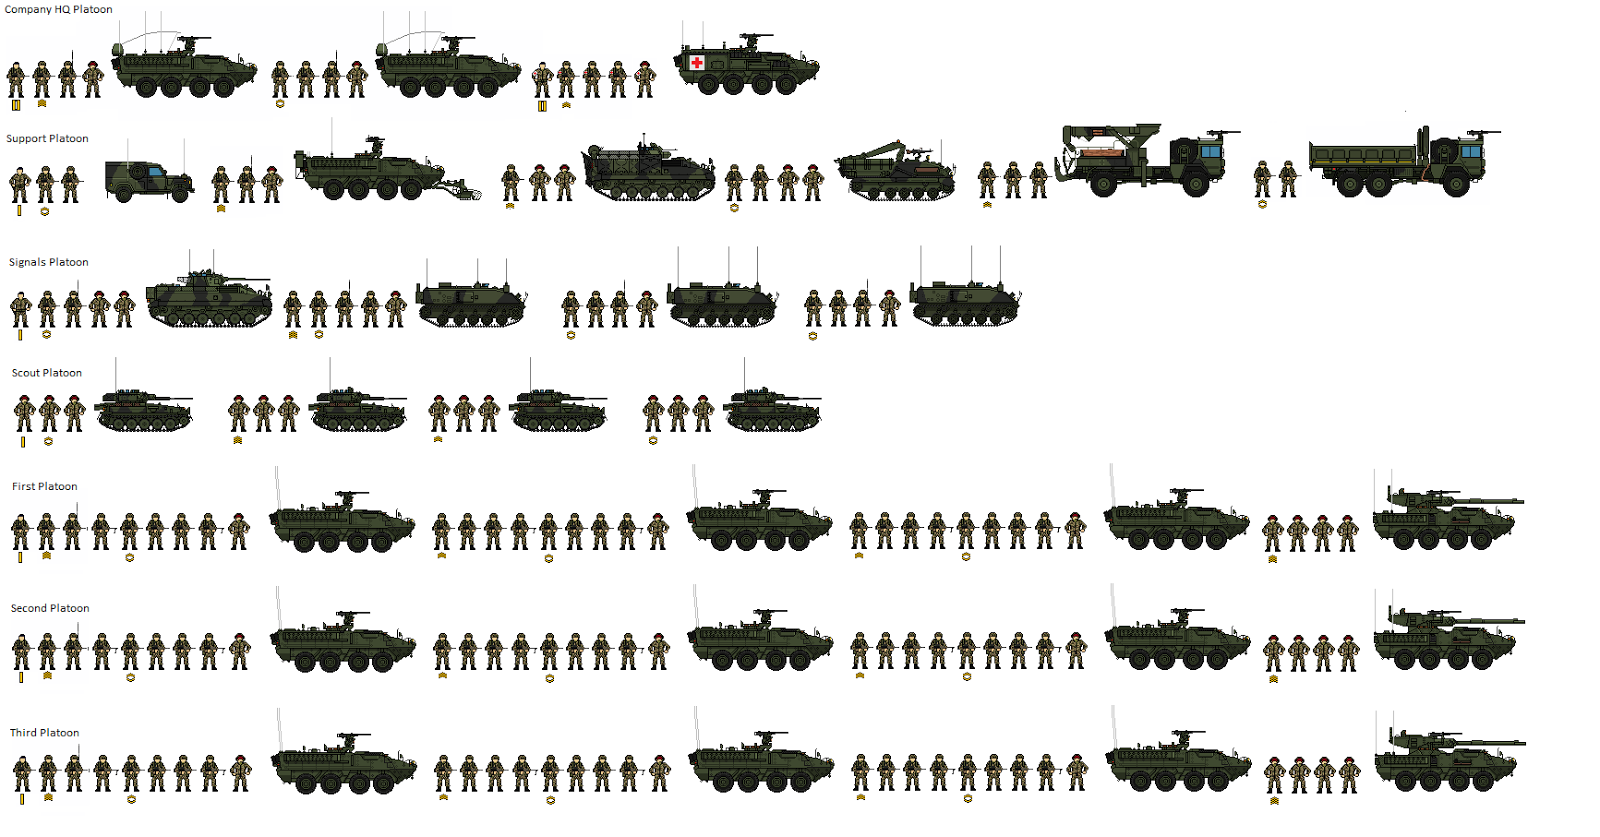 Military Organization Companies And Battalions